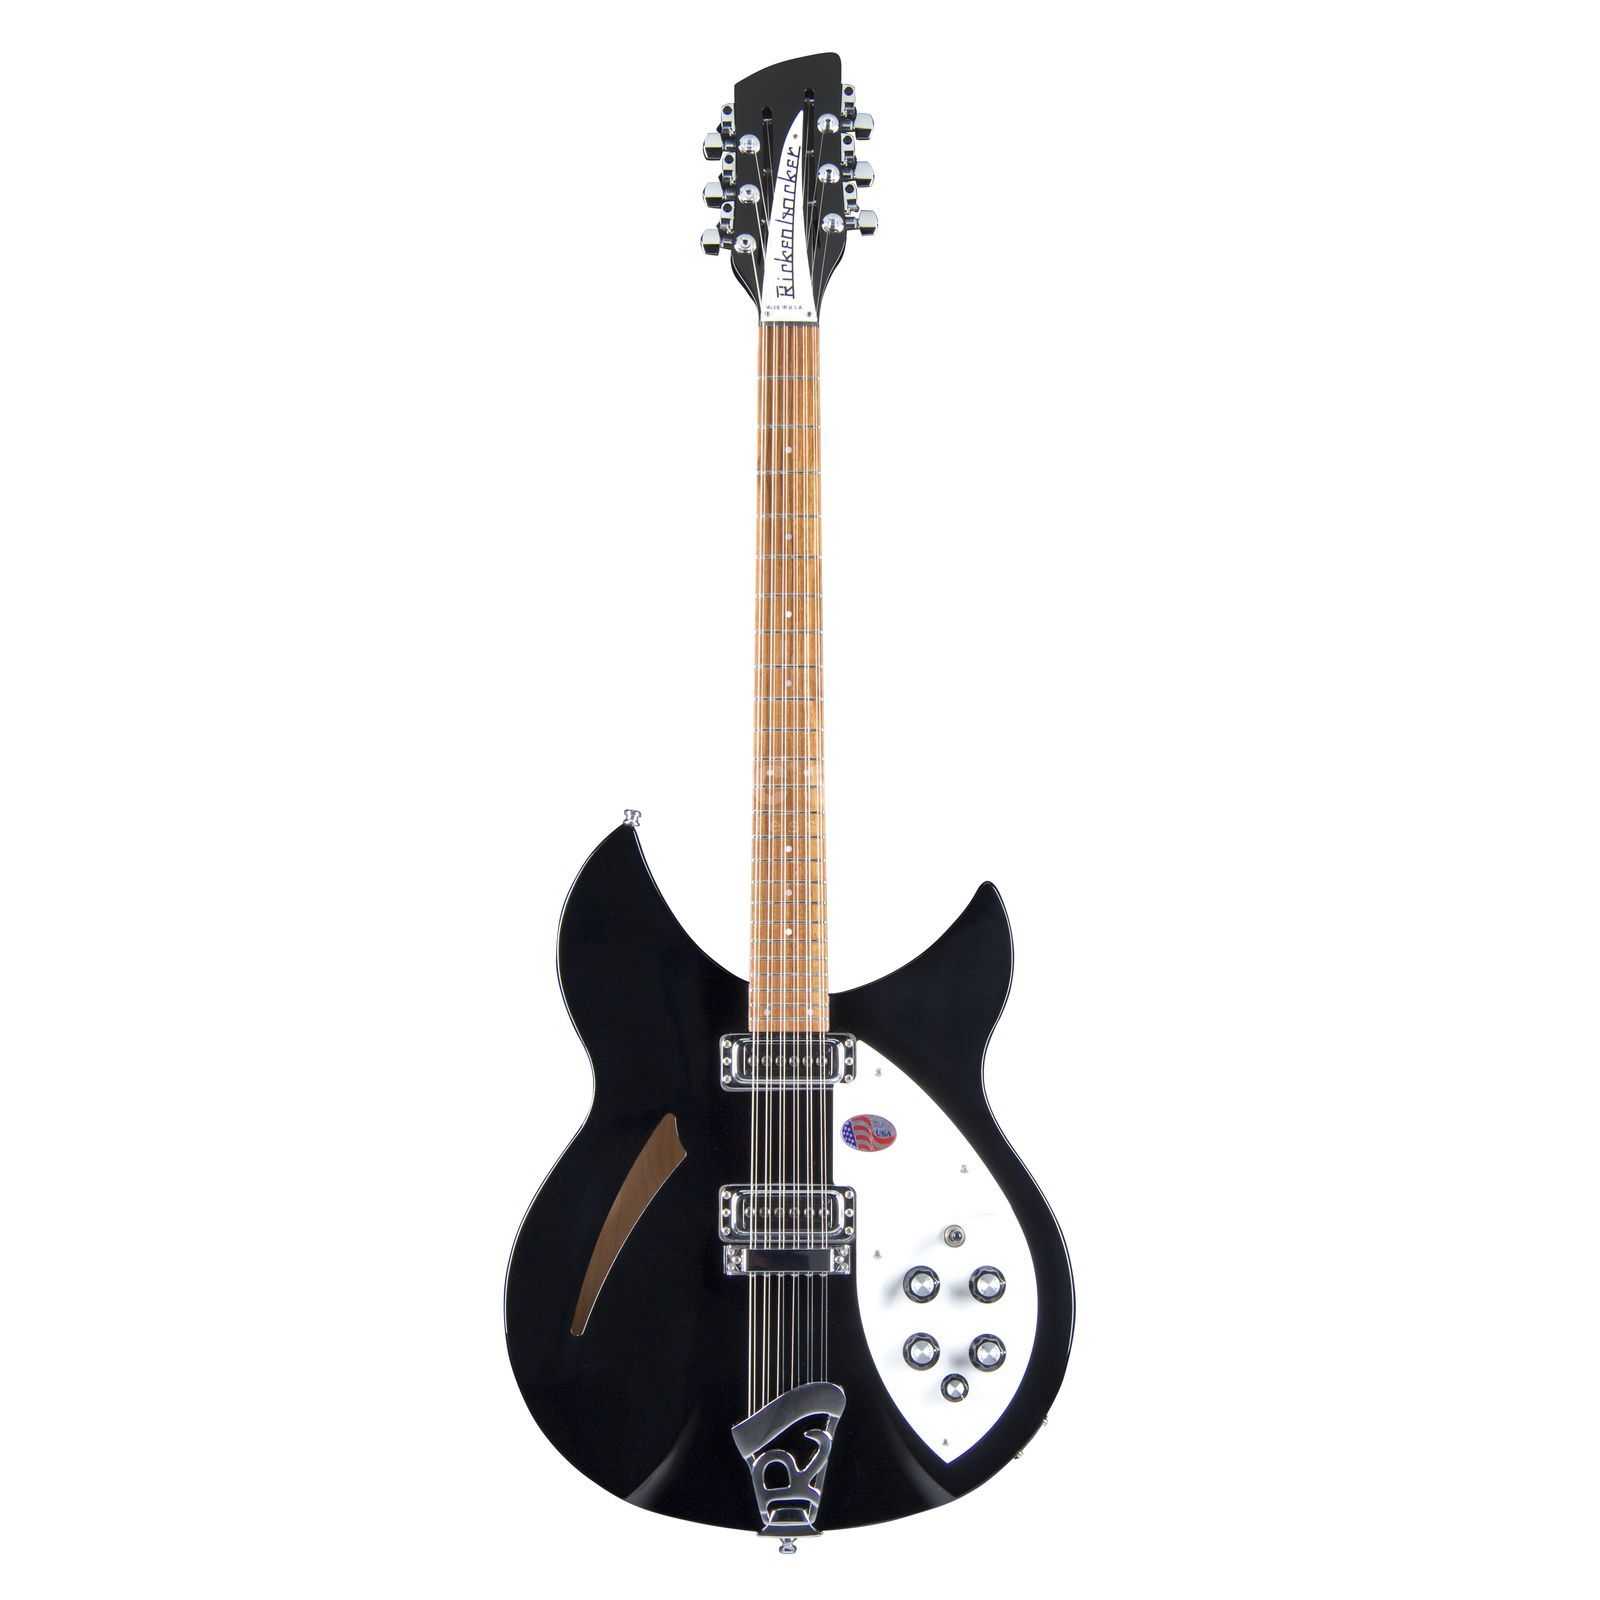 Rickenbacker 330 12 String Electric Guitar,  Jetglo Produktbillede